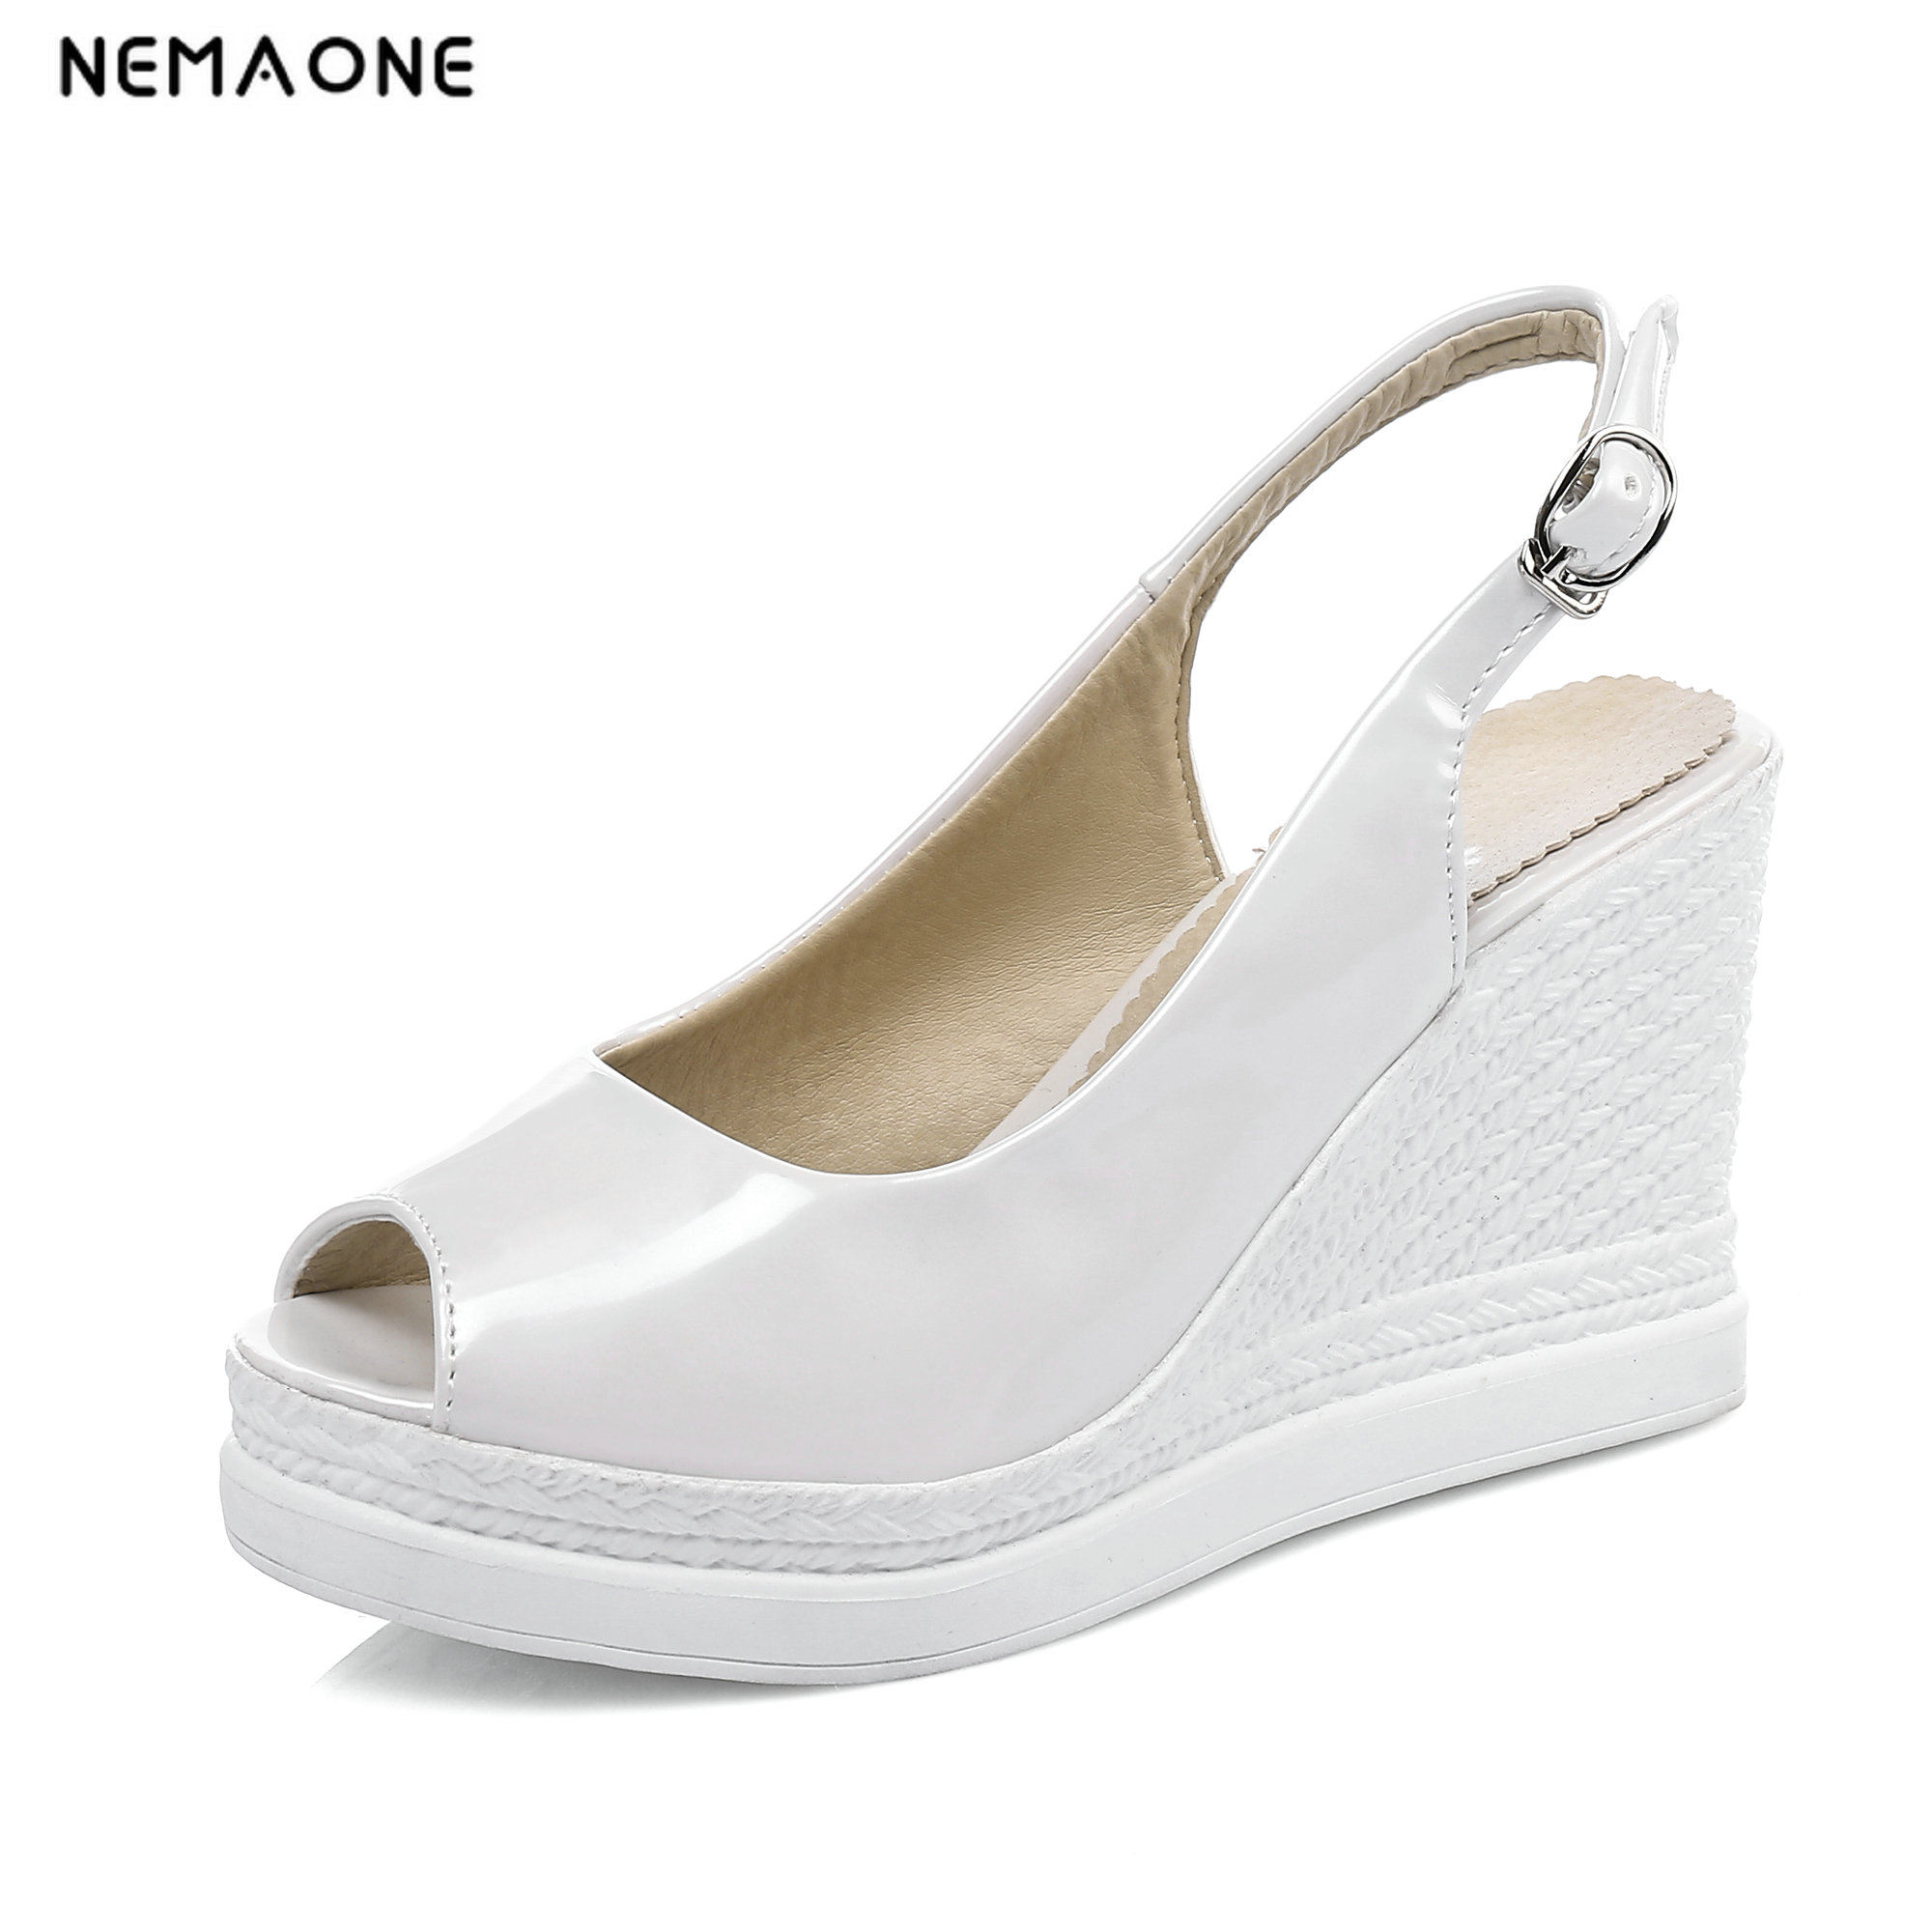 NEMAONE sexy fashion sandals woman 2018 summer wedges high heels gladiator plus size party shoes buckle sandals